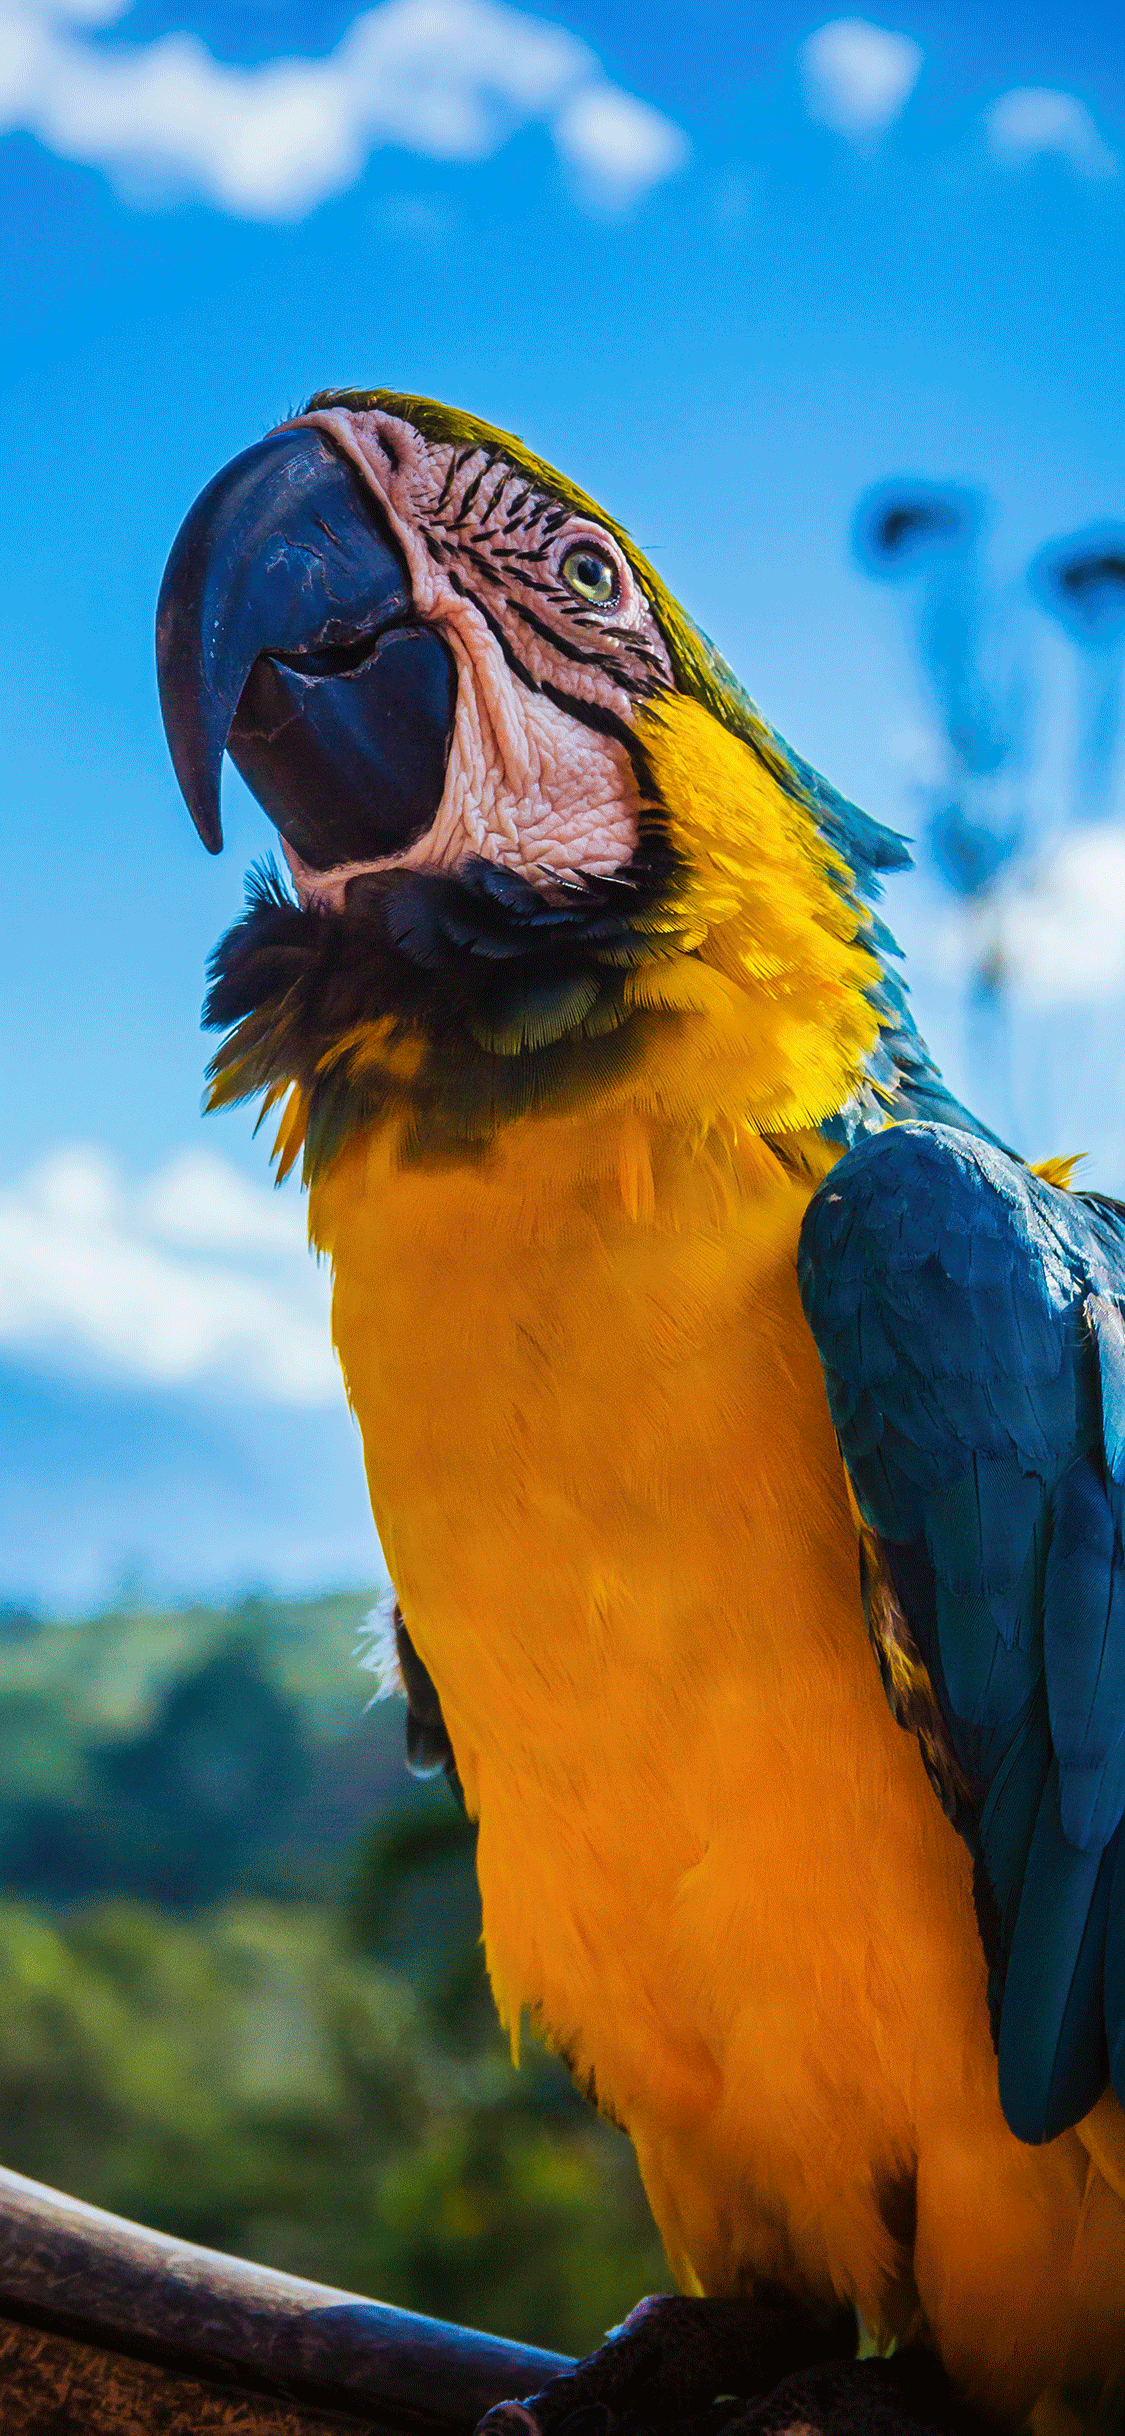 iPhone wallpaper parrot Parrot